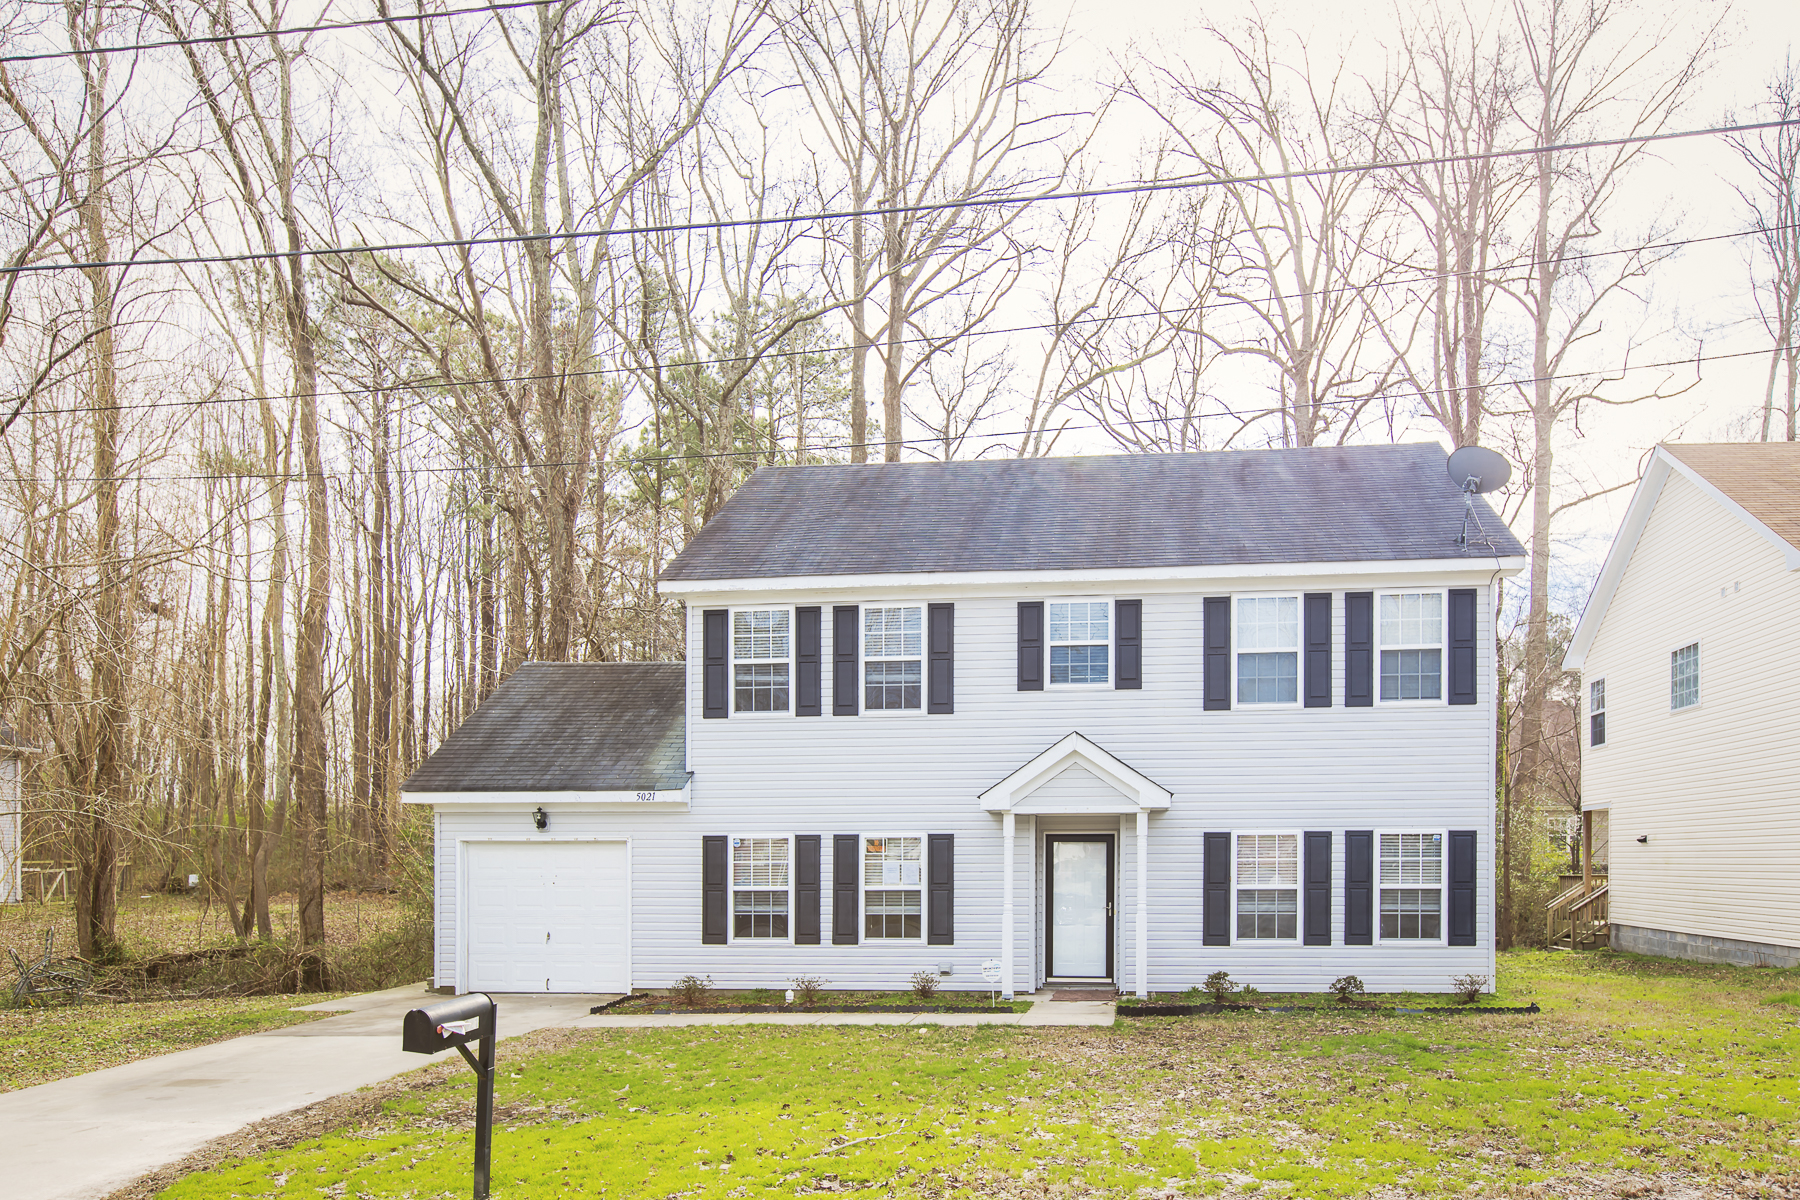 Single Family Home for Sale at Western Branch 5021 John St Chesapeake, Virginia 23321 United States